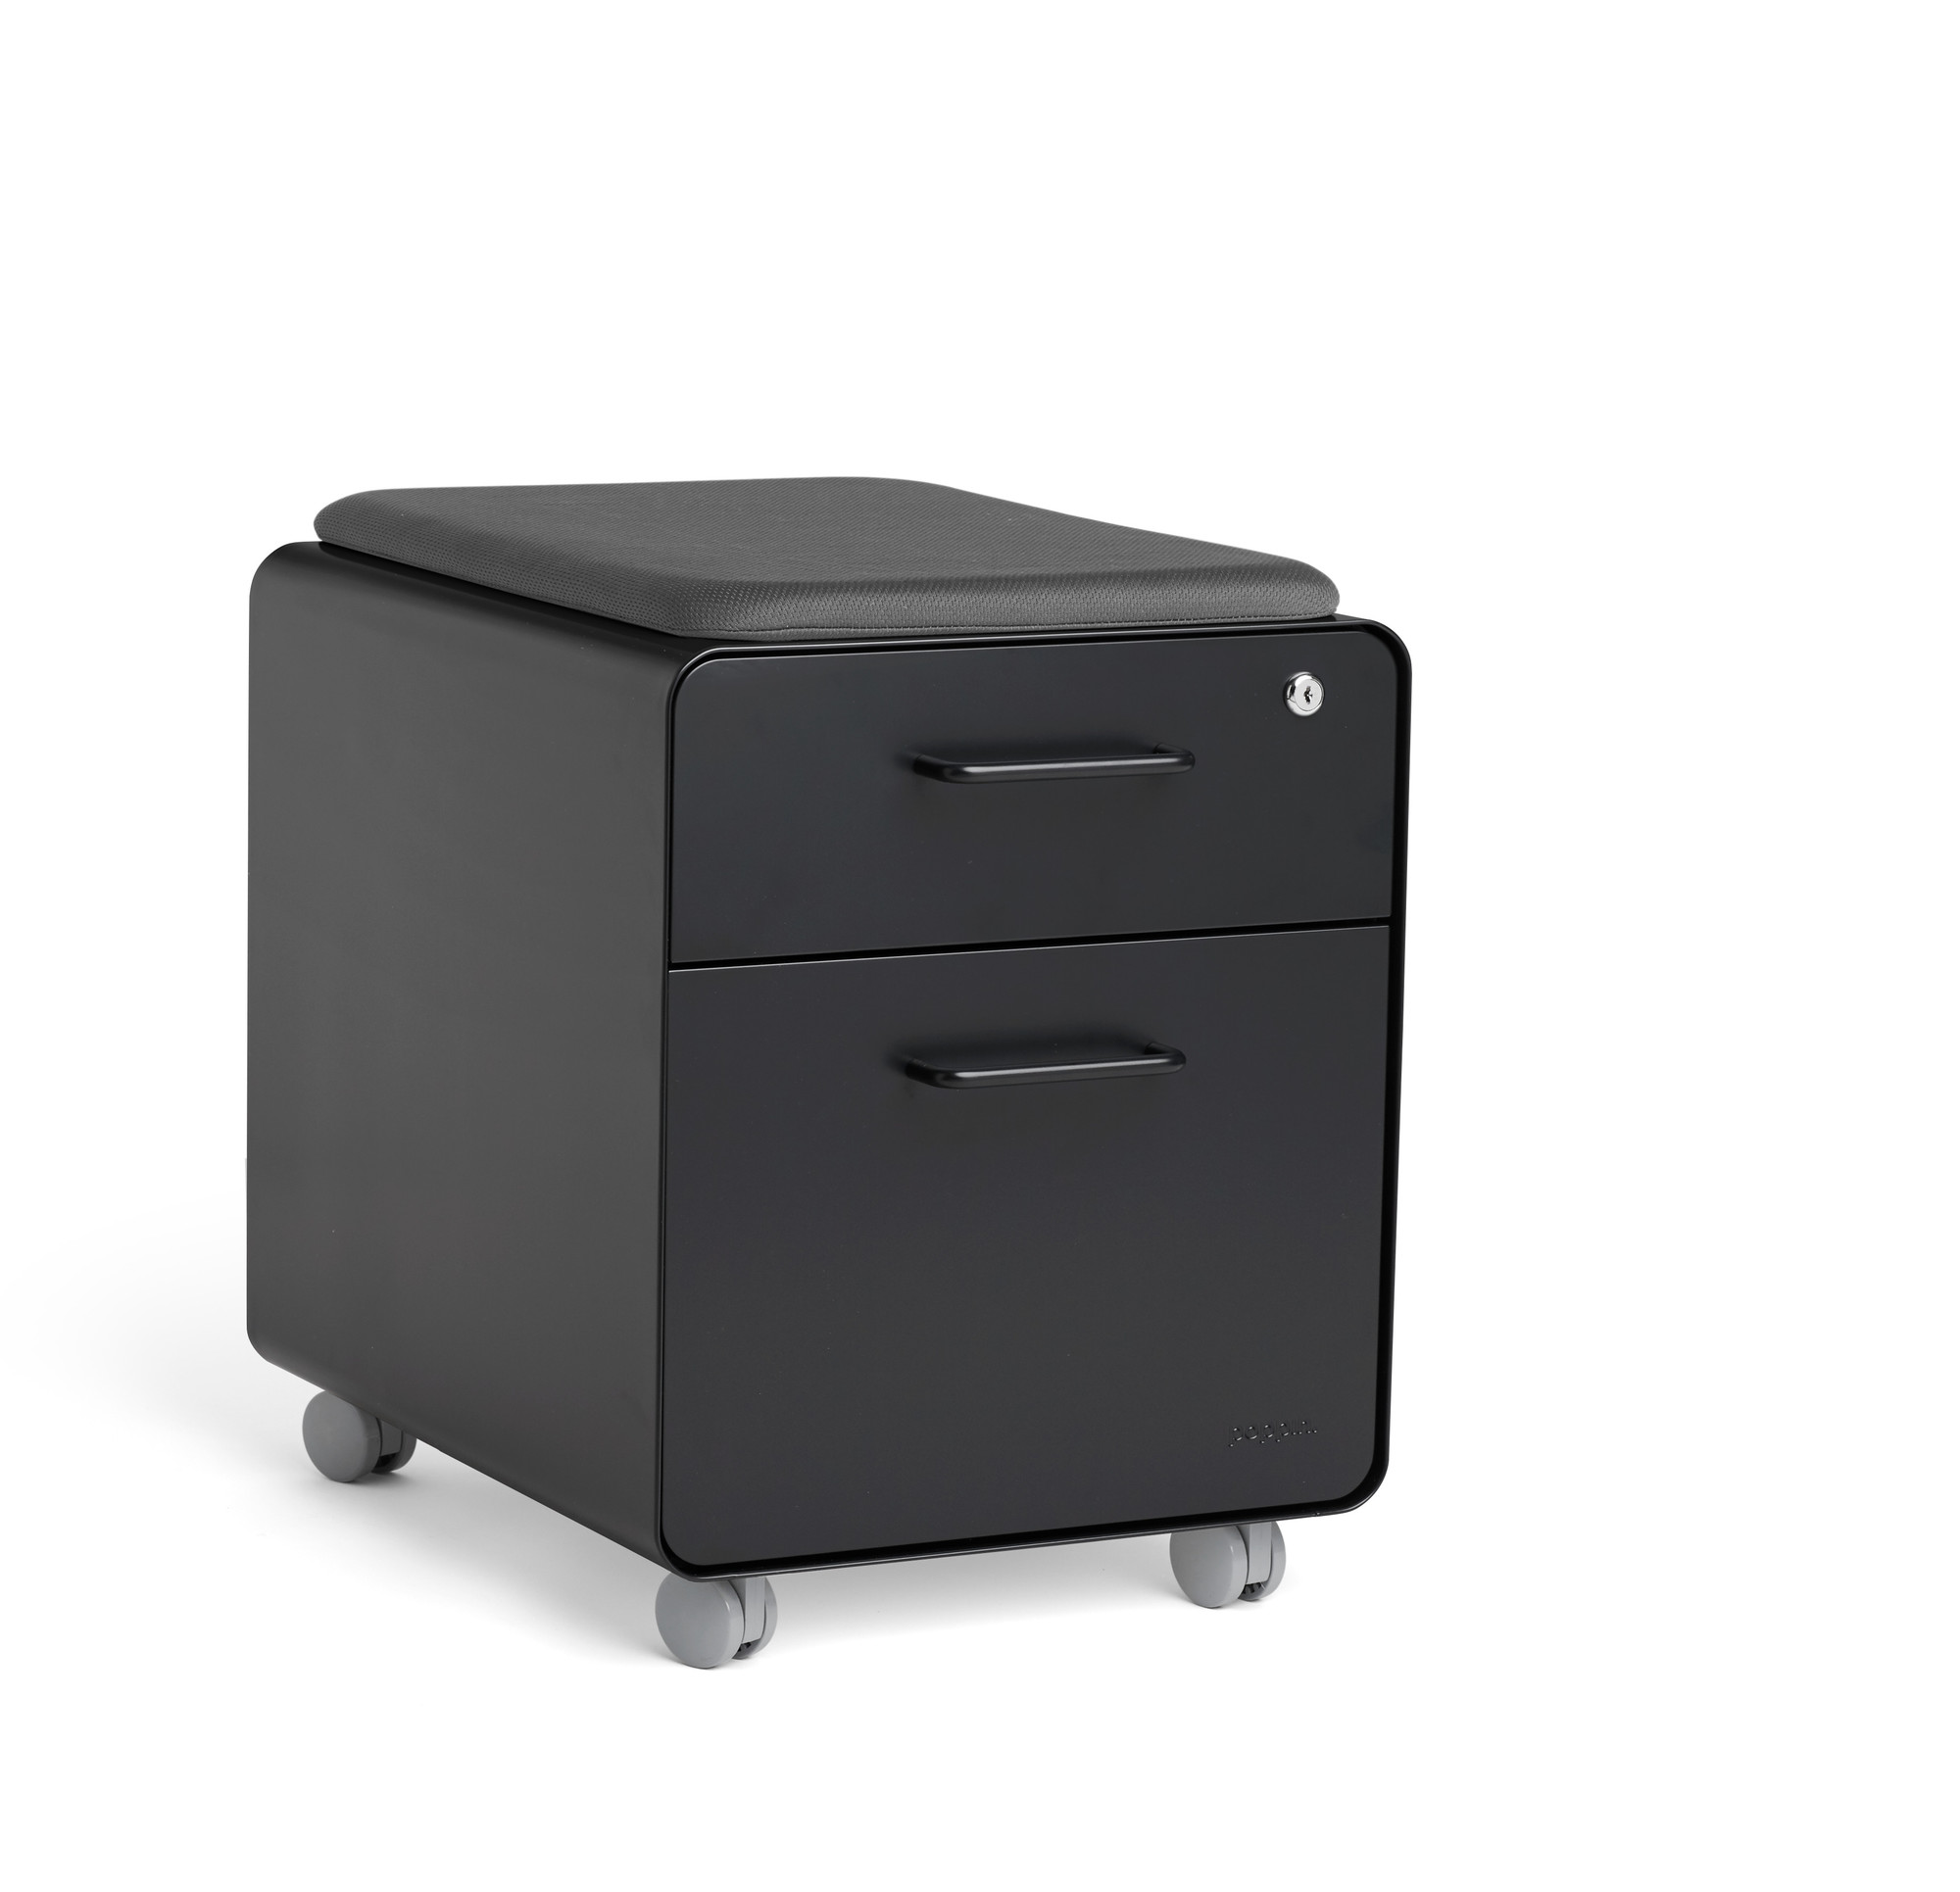 Rolling Filing Cabinets Black Mini Stow 2 Drawer File Cabinet Rolling 2 Drawer File Cabinets Poppin